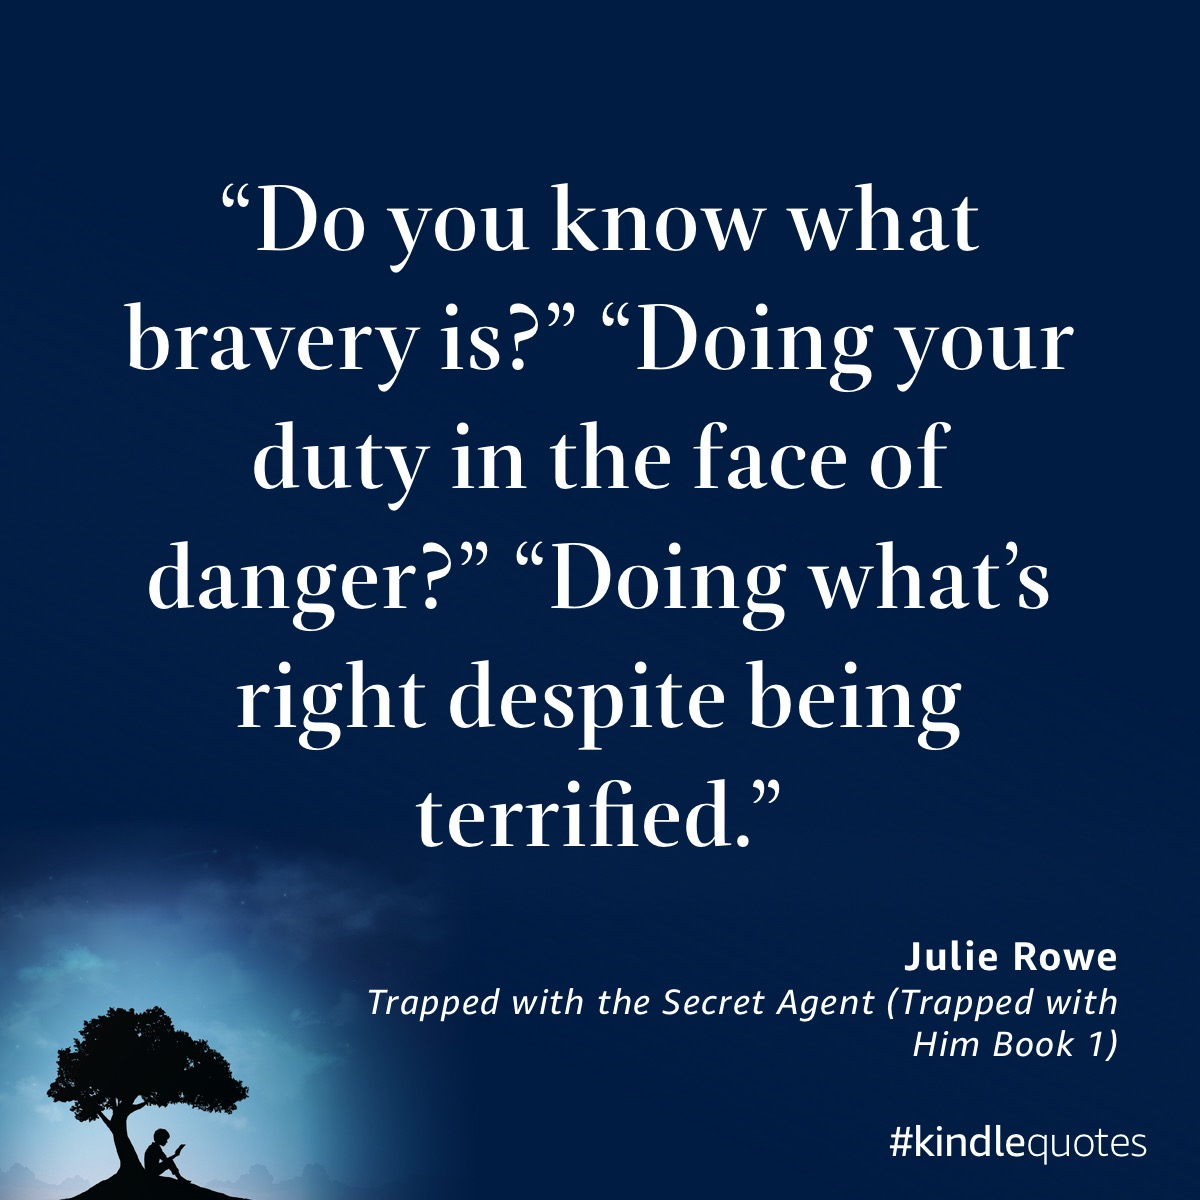 Book quote Julie Rowe